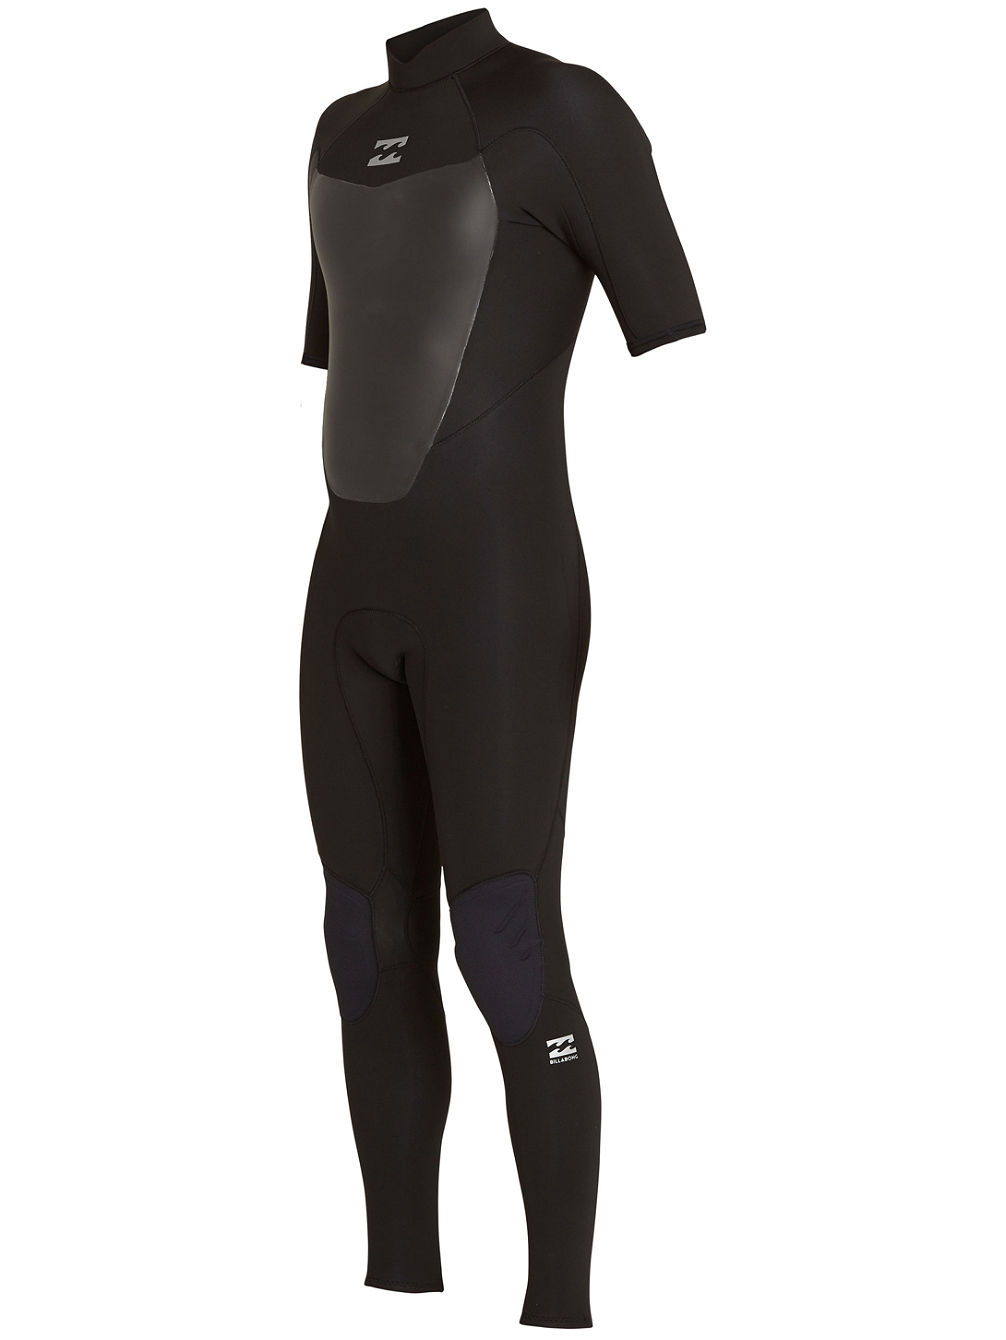 2/2Absolute Back Zip Wetsuit